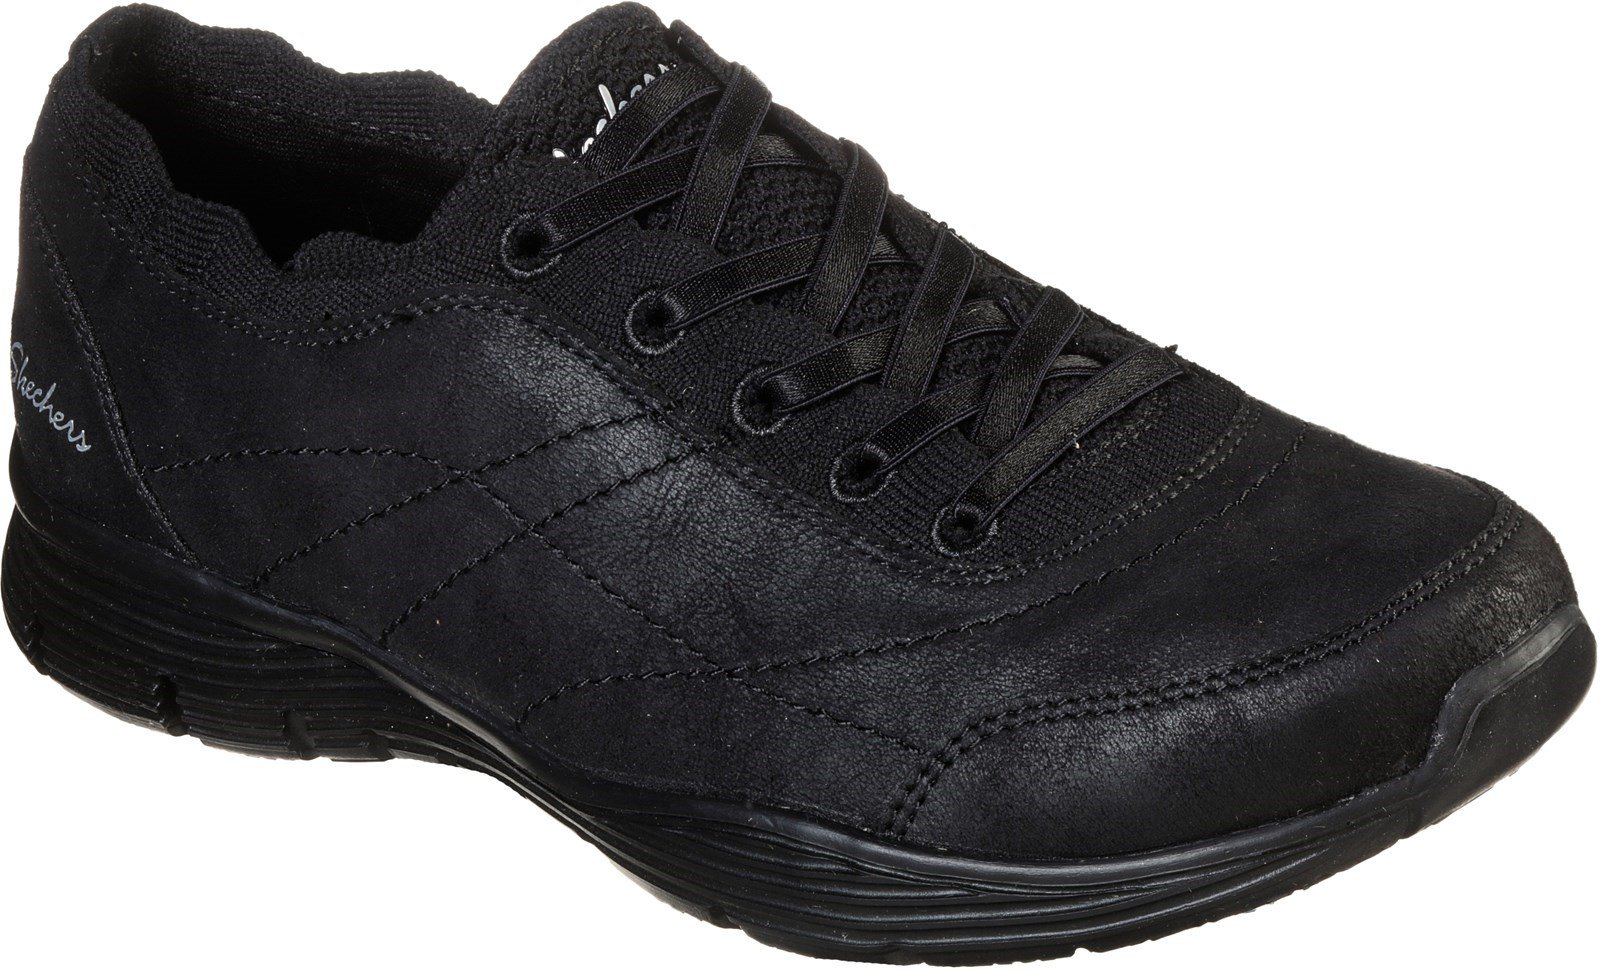 Skechers Women's Seager Scholarly Sports Trainer Various Colours 31063 - Black/Black 3